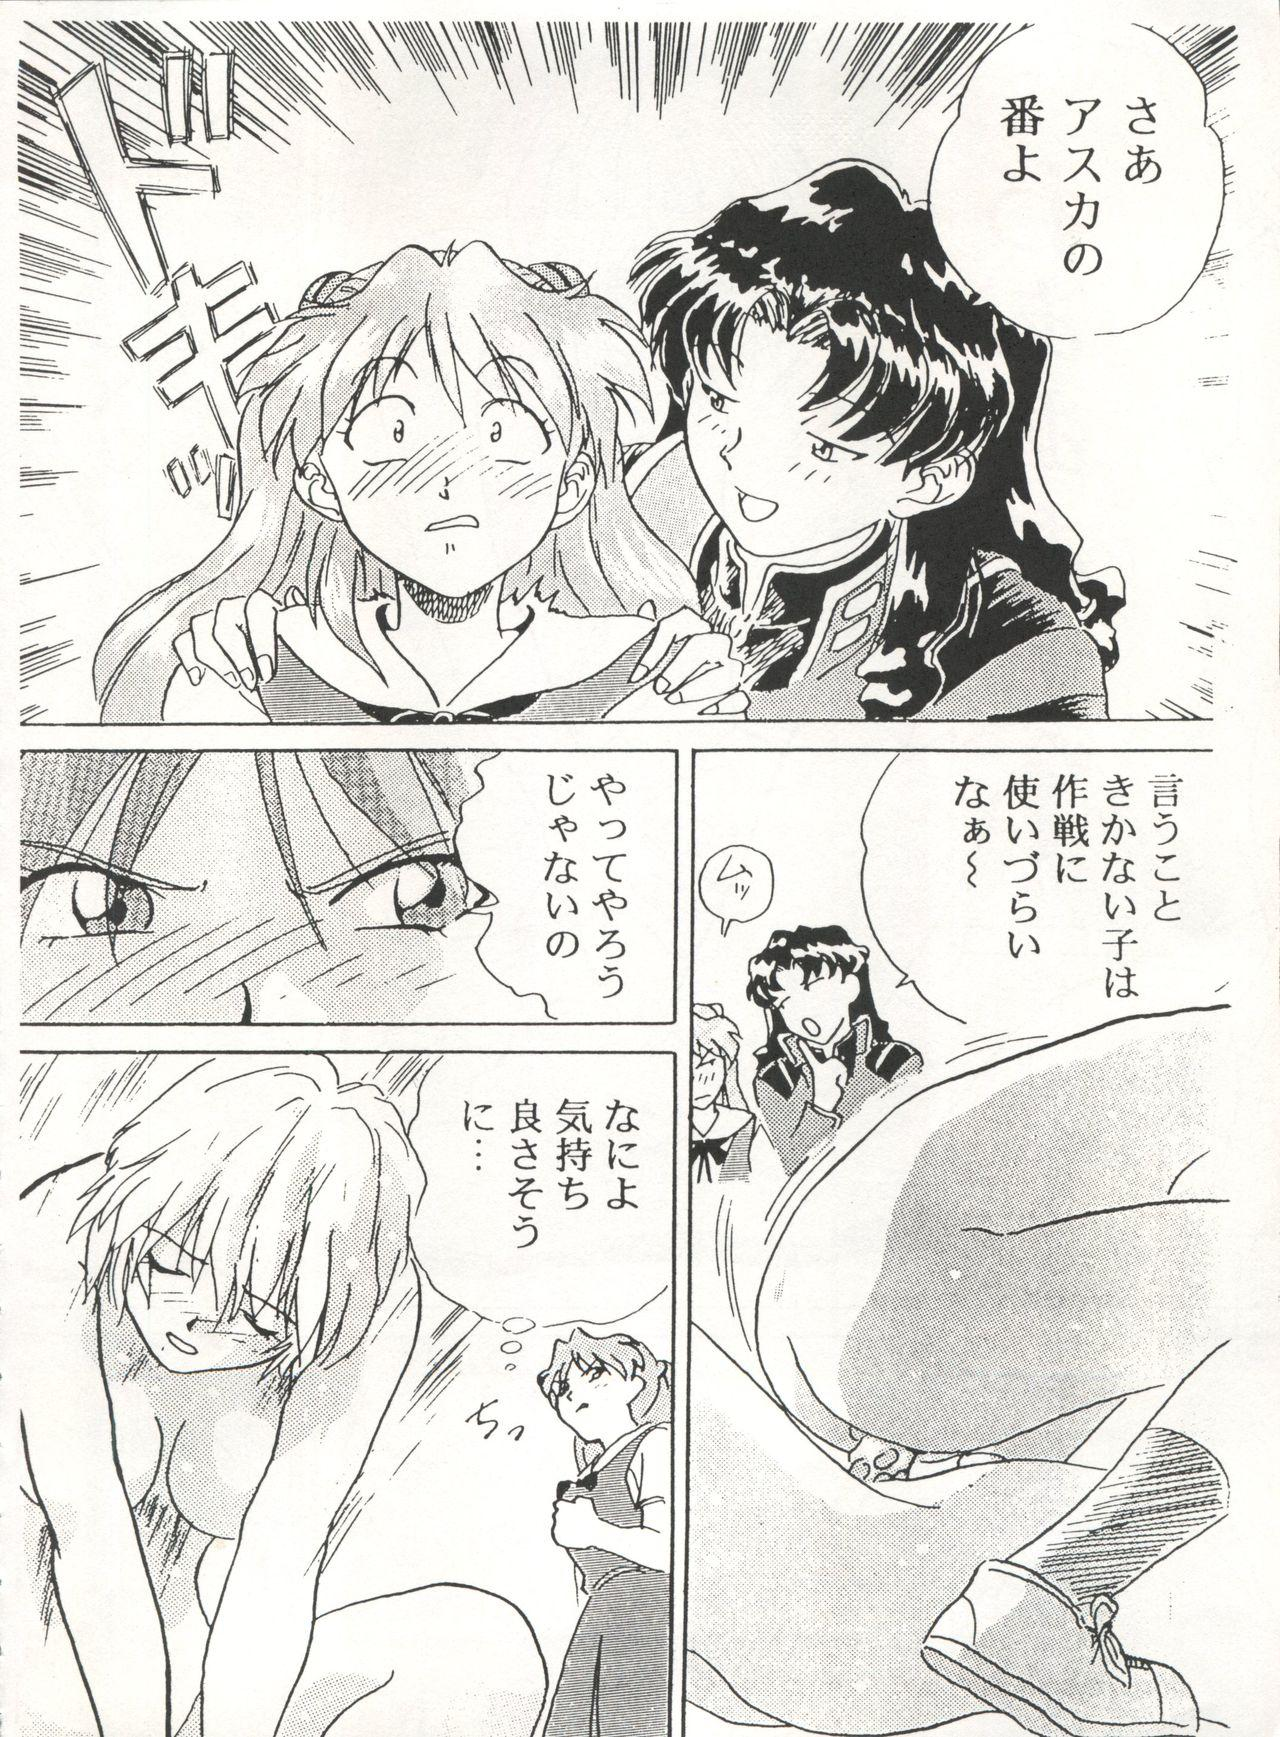 MOUSOU THEATER 6 + 9